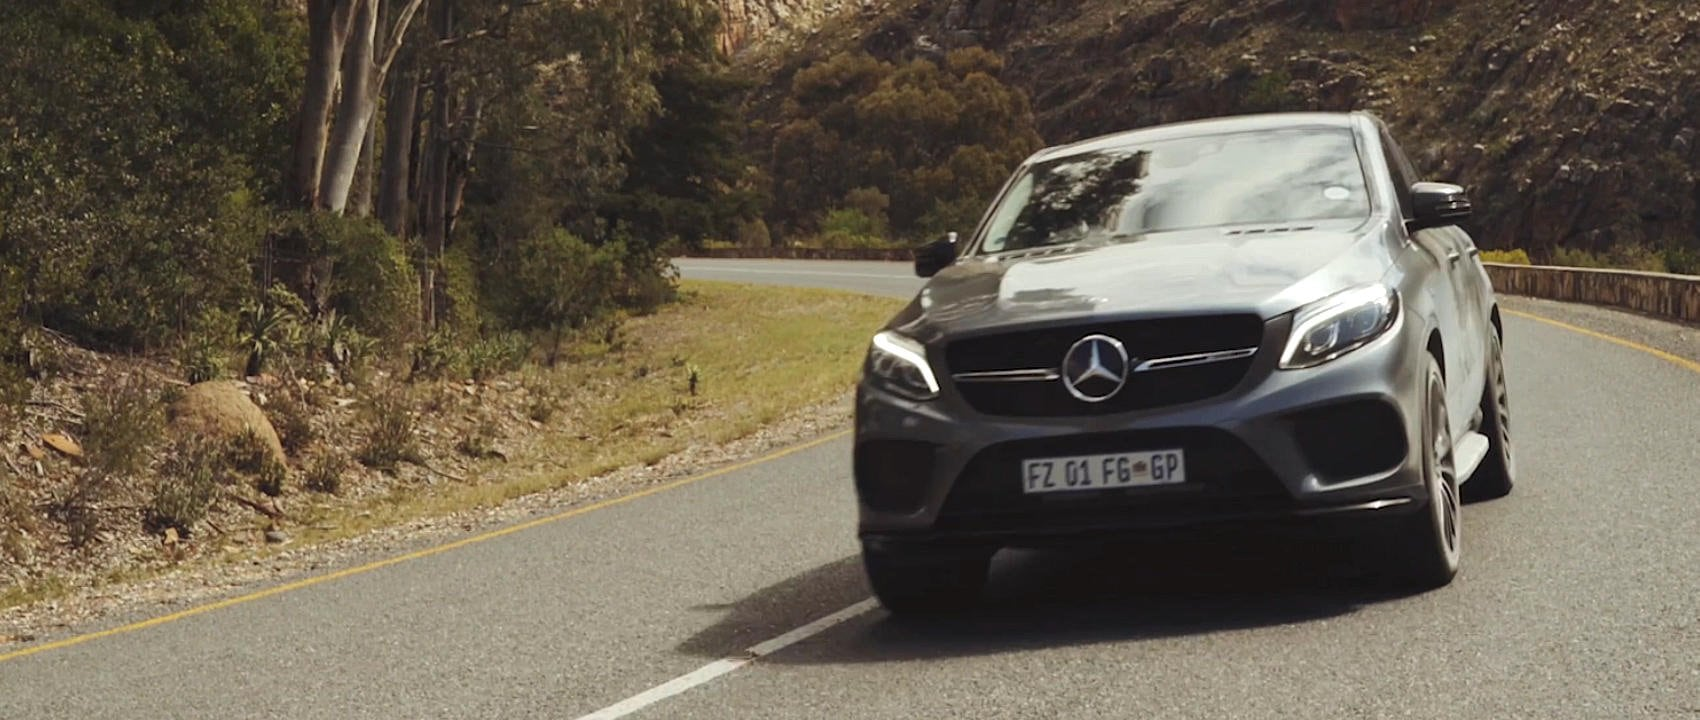 #MBvideocar: Mercedes-AMG GLE 43 4MATIC Coupé in Südafrika (C 292).